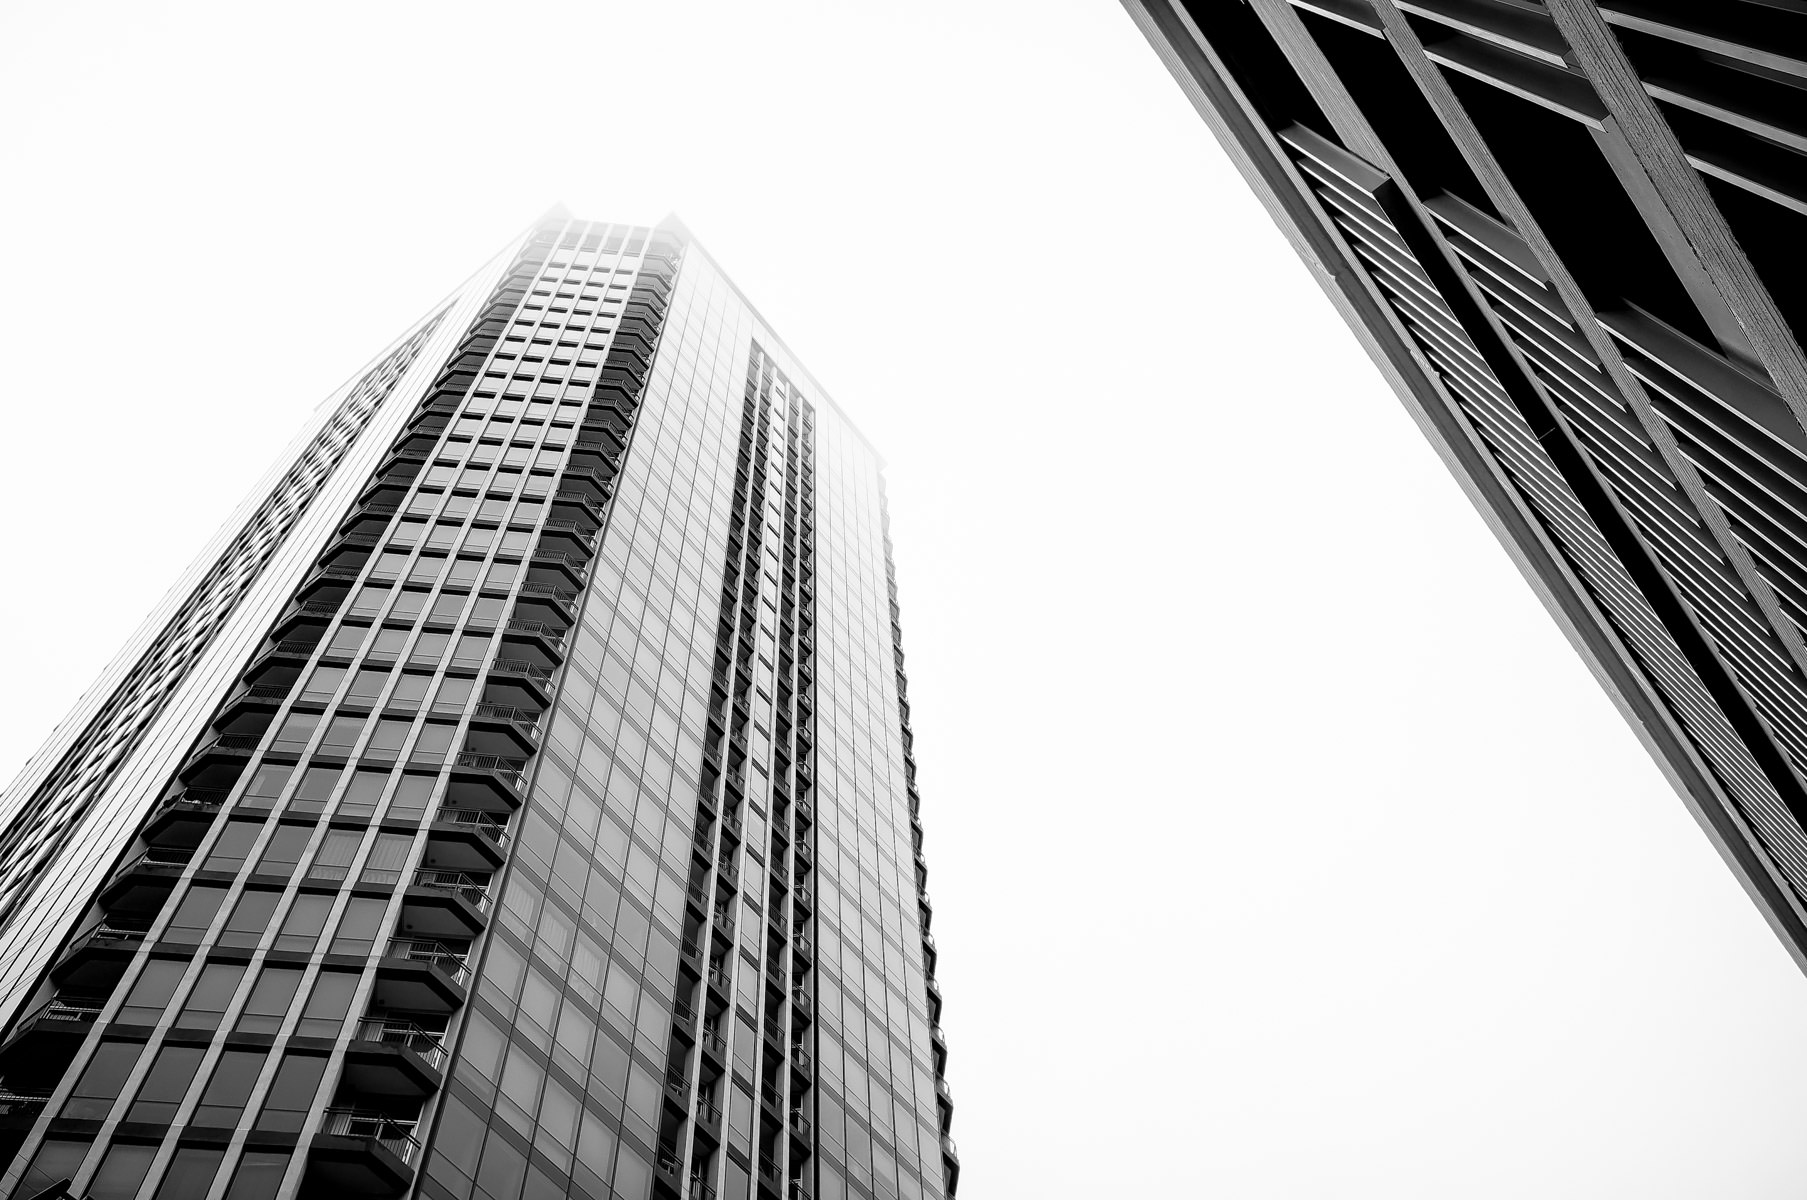 The Tower Condominiums rises into the clouds on a cold, rainy winter day in Downtown Fort Worth, Texas.